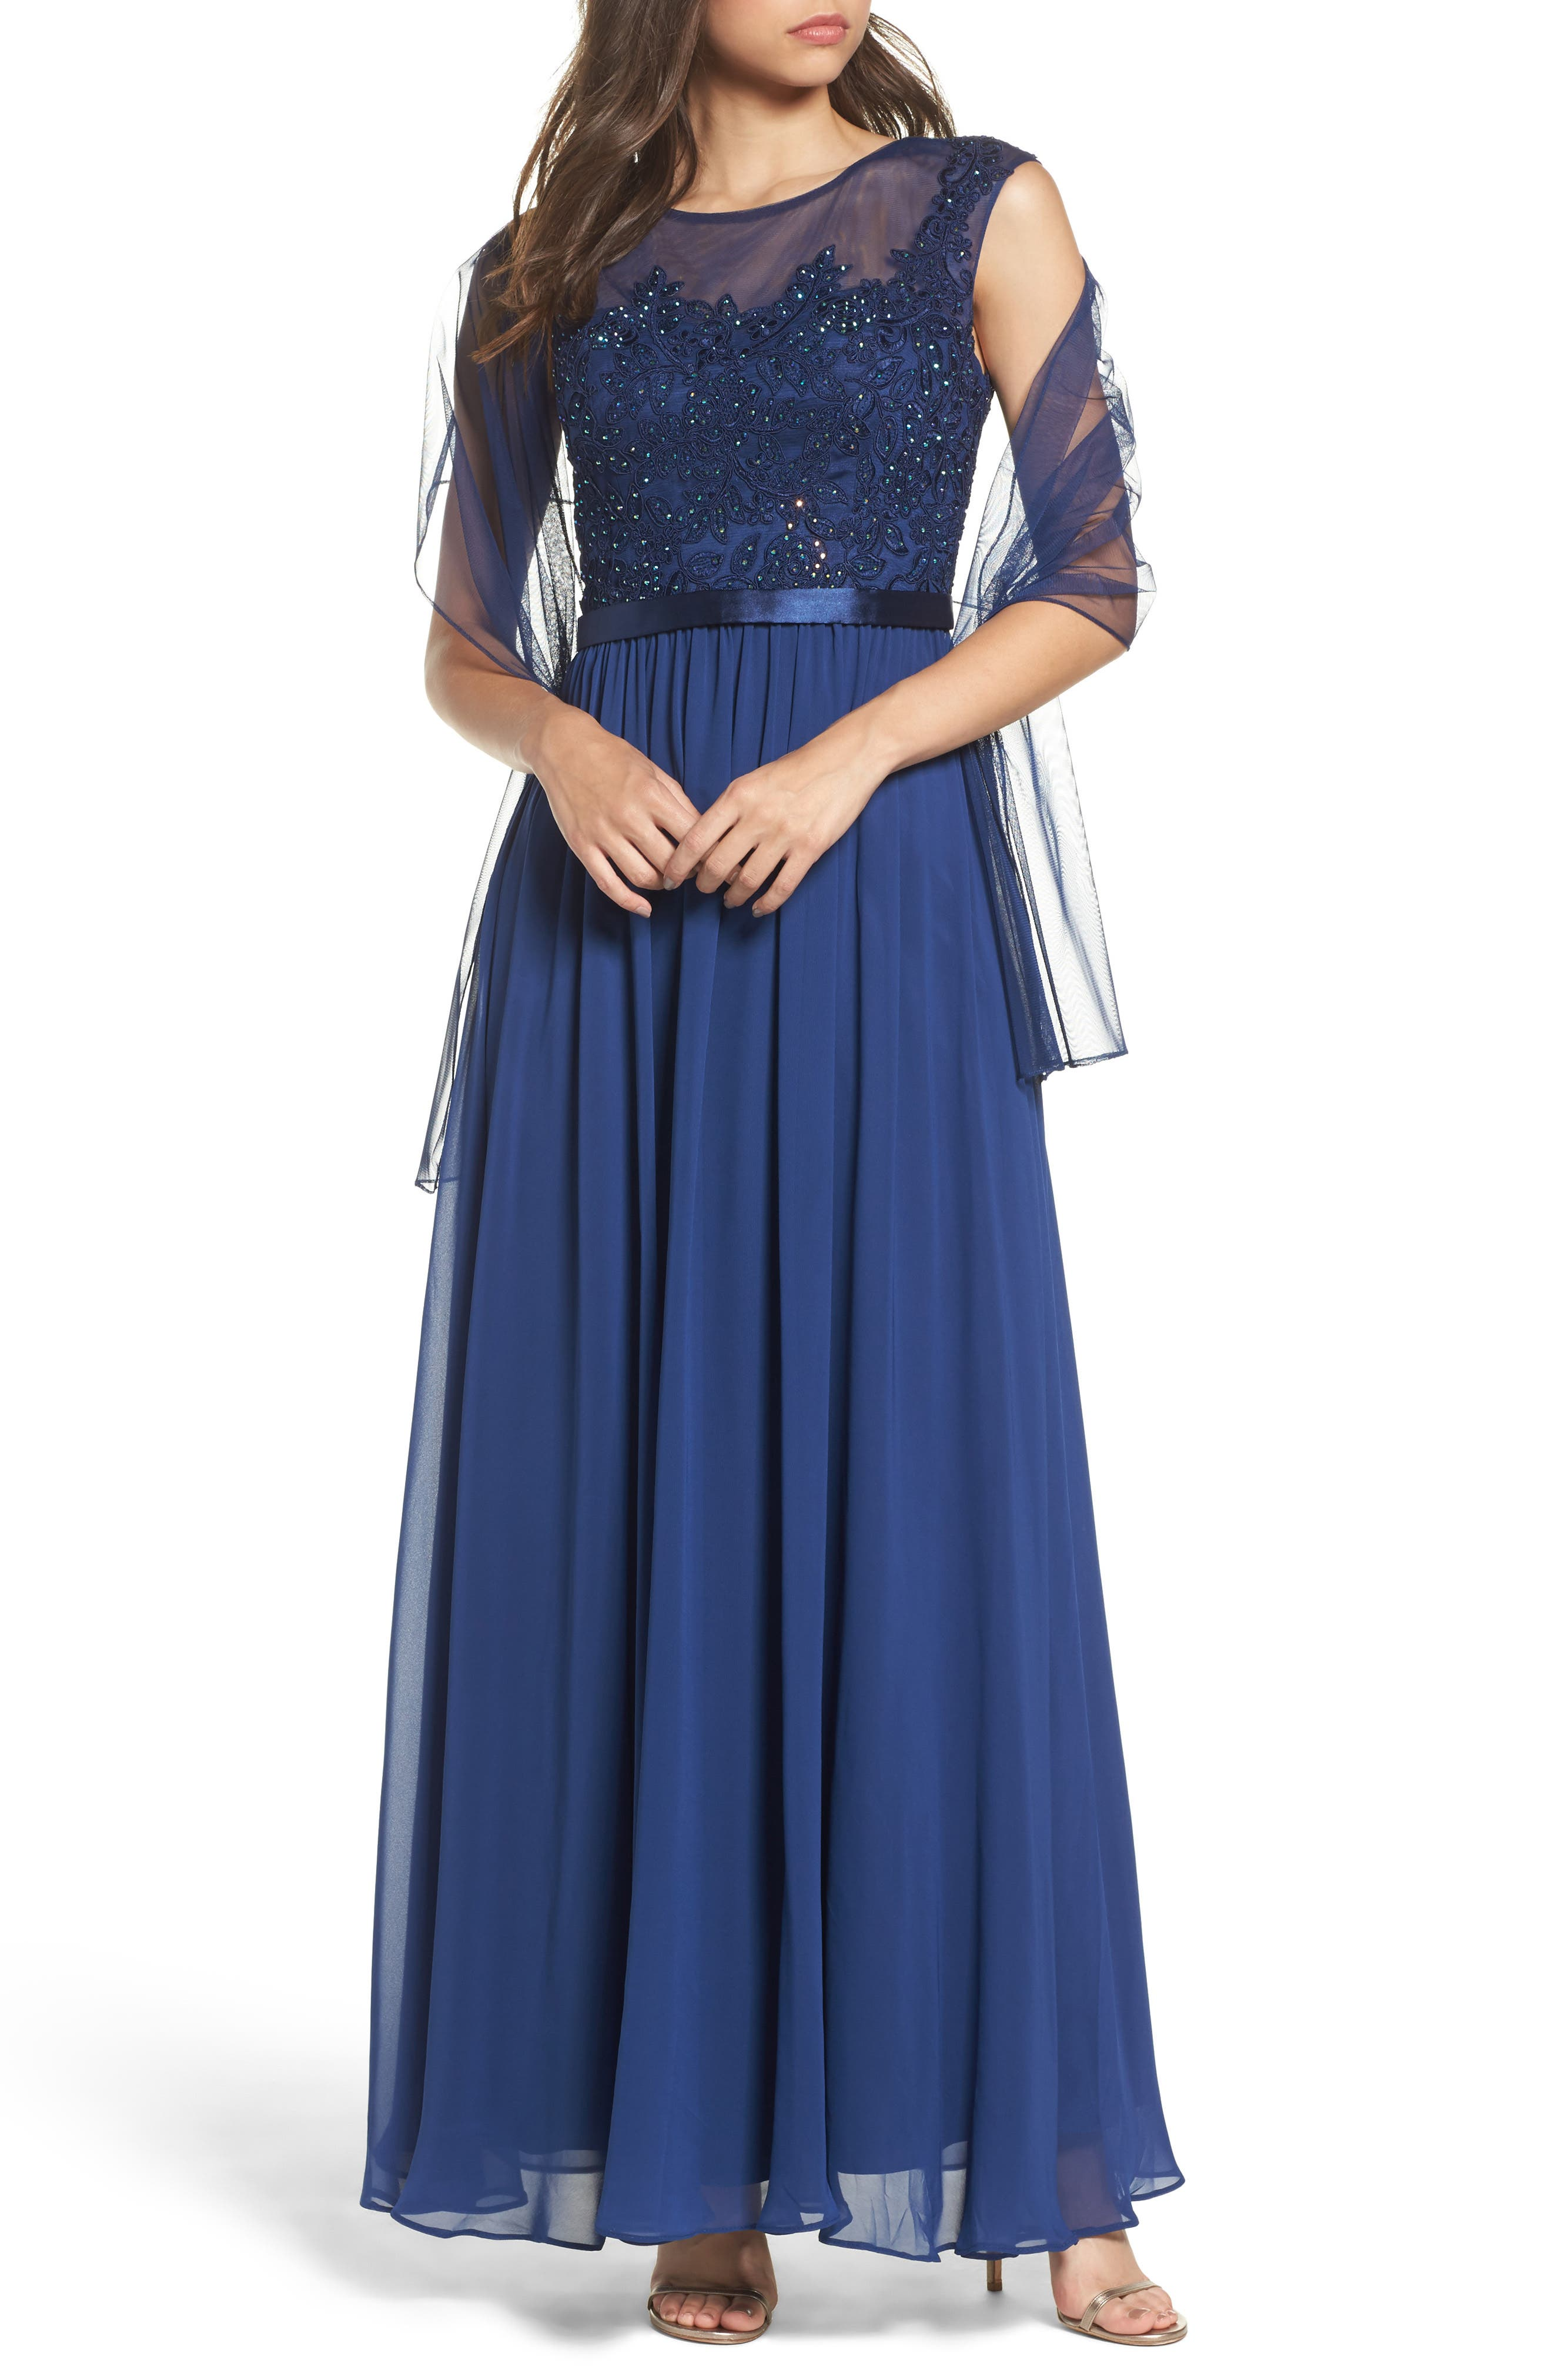 Xcape Embellished Bodice Mesh A-Line Gown,                         Main,                         color, Ocean Blue